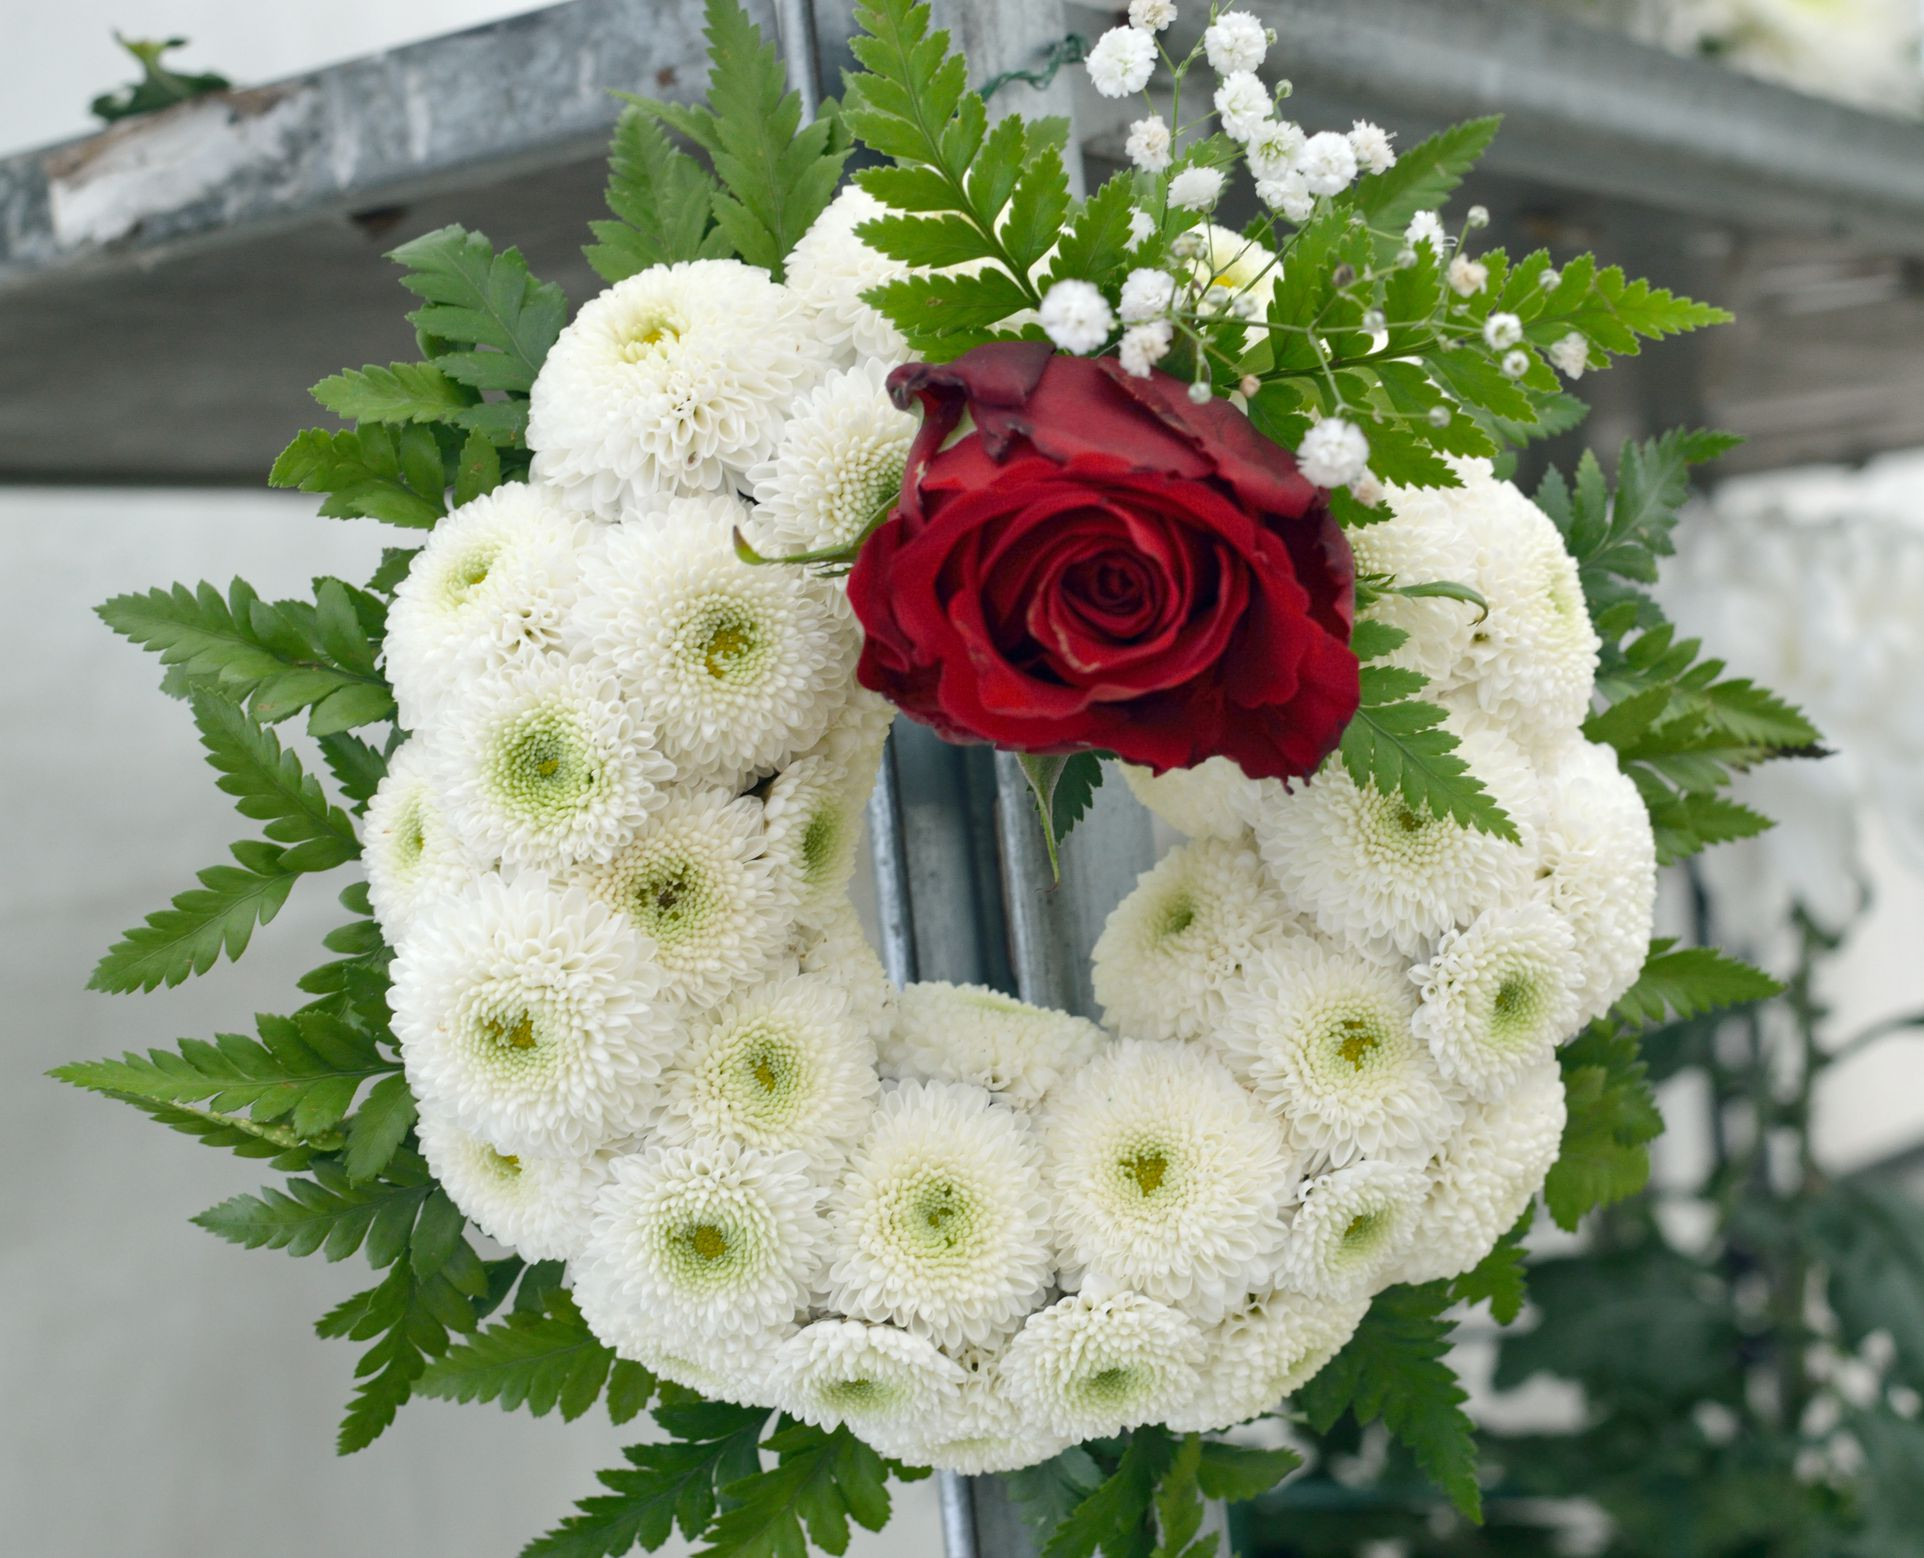 Headstone Vase Flower Arrangements Of Proper Etiquette for Sending Funeral Flowers with Regard to Funeralwreath Gettyimages 591655301 5a3edccc5b6e240037ffc773